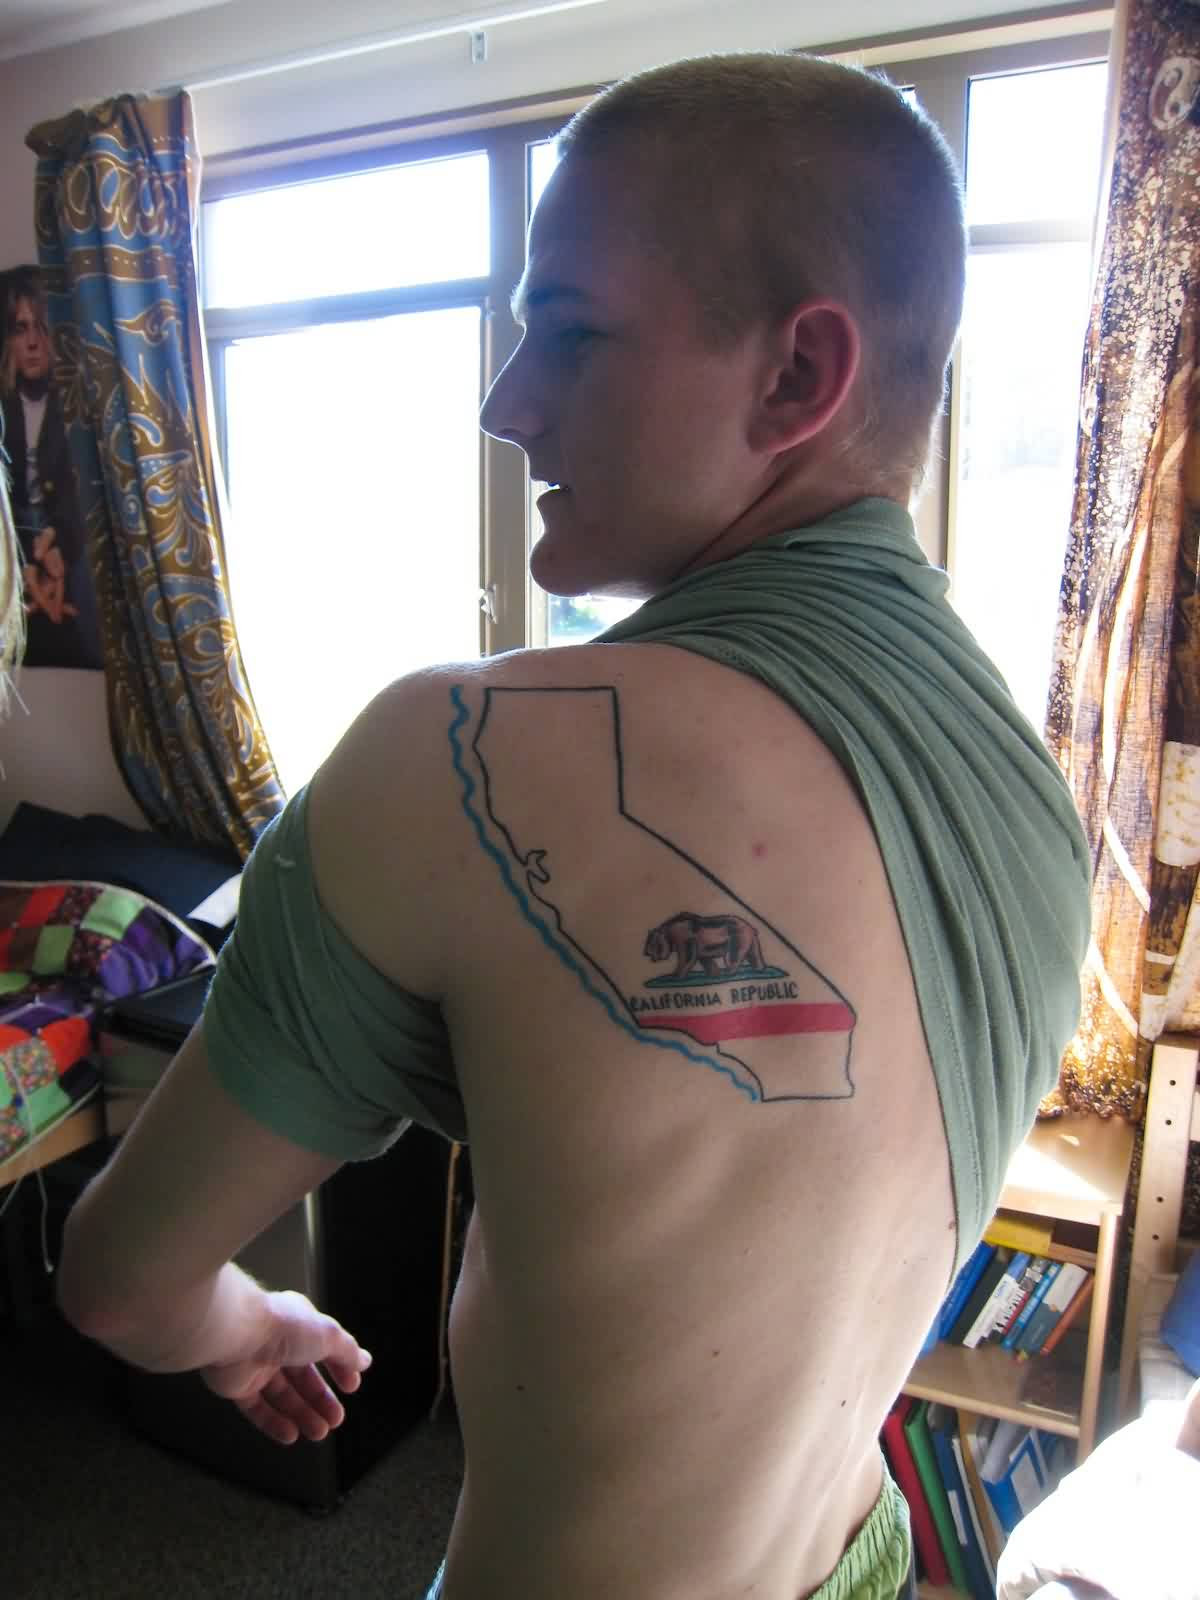 Boy Shows Off His Map Tattoo